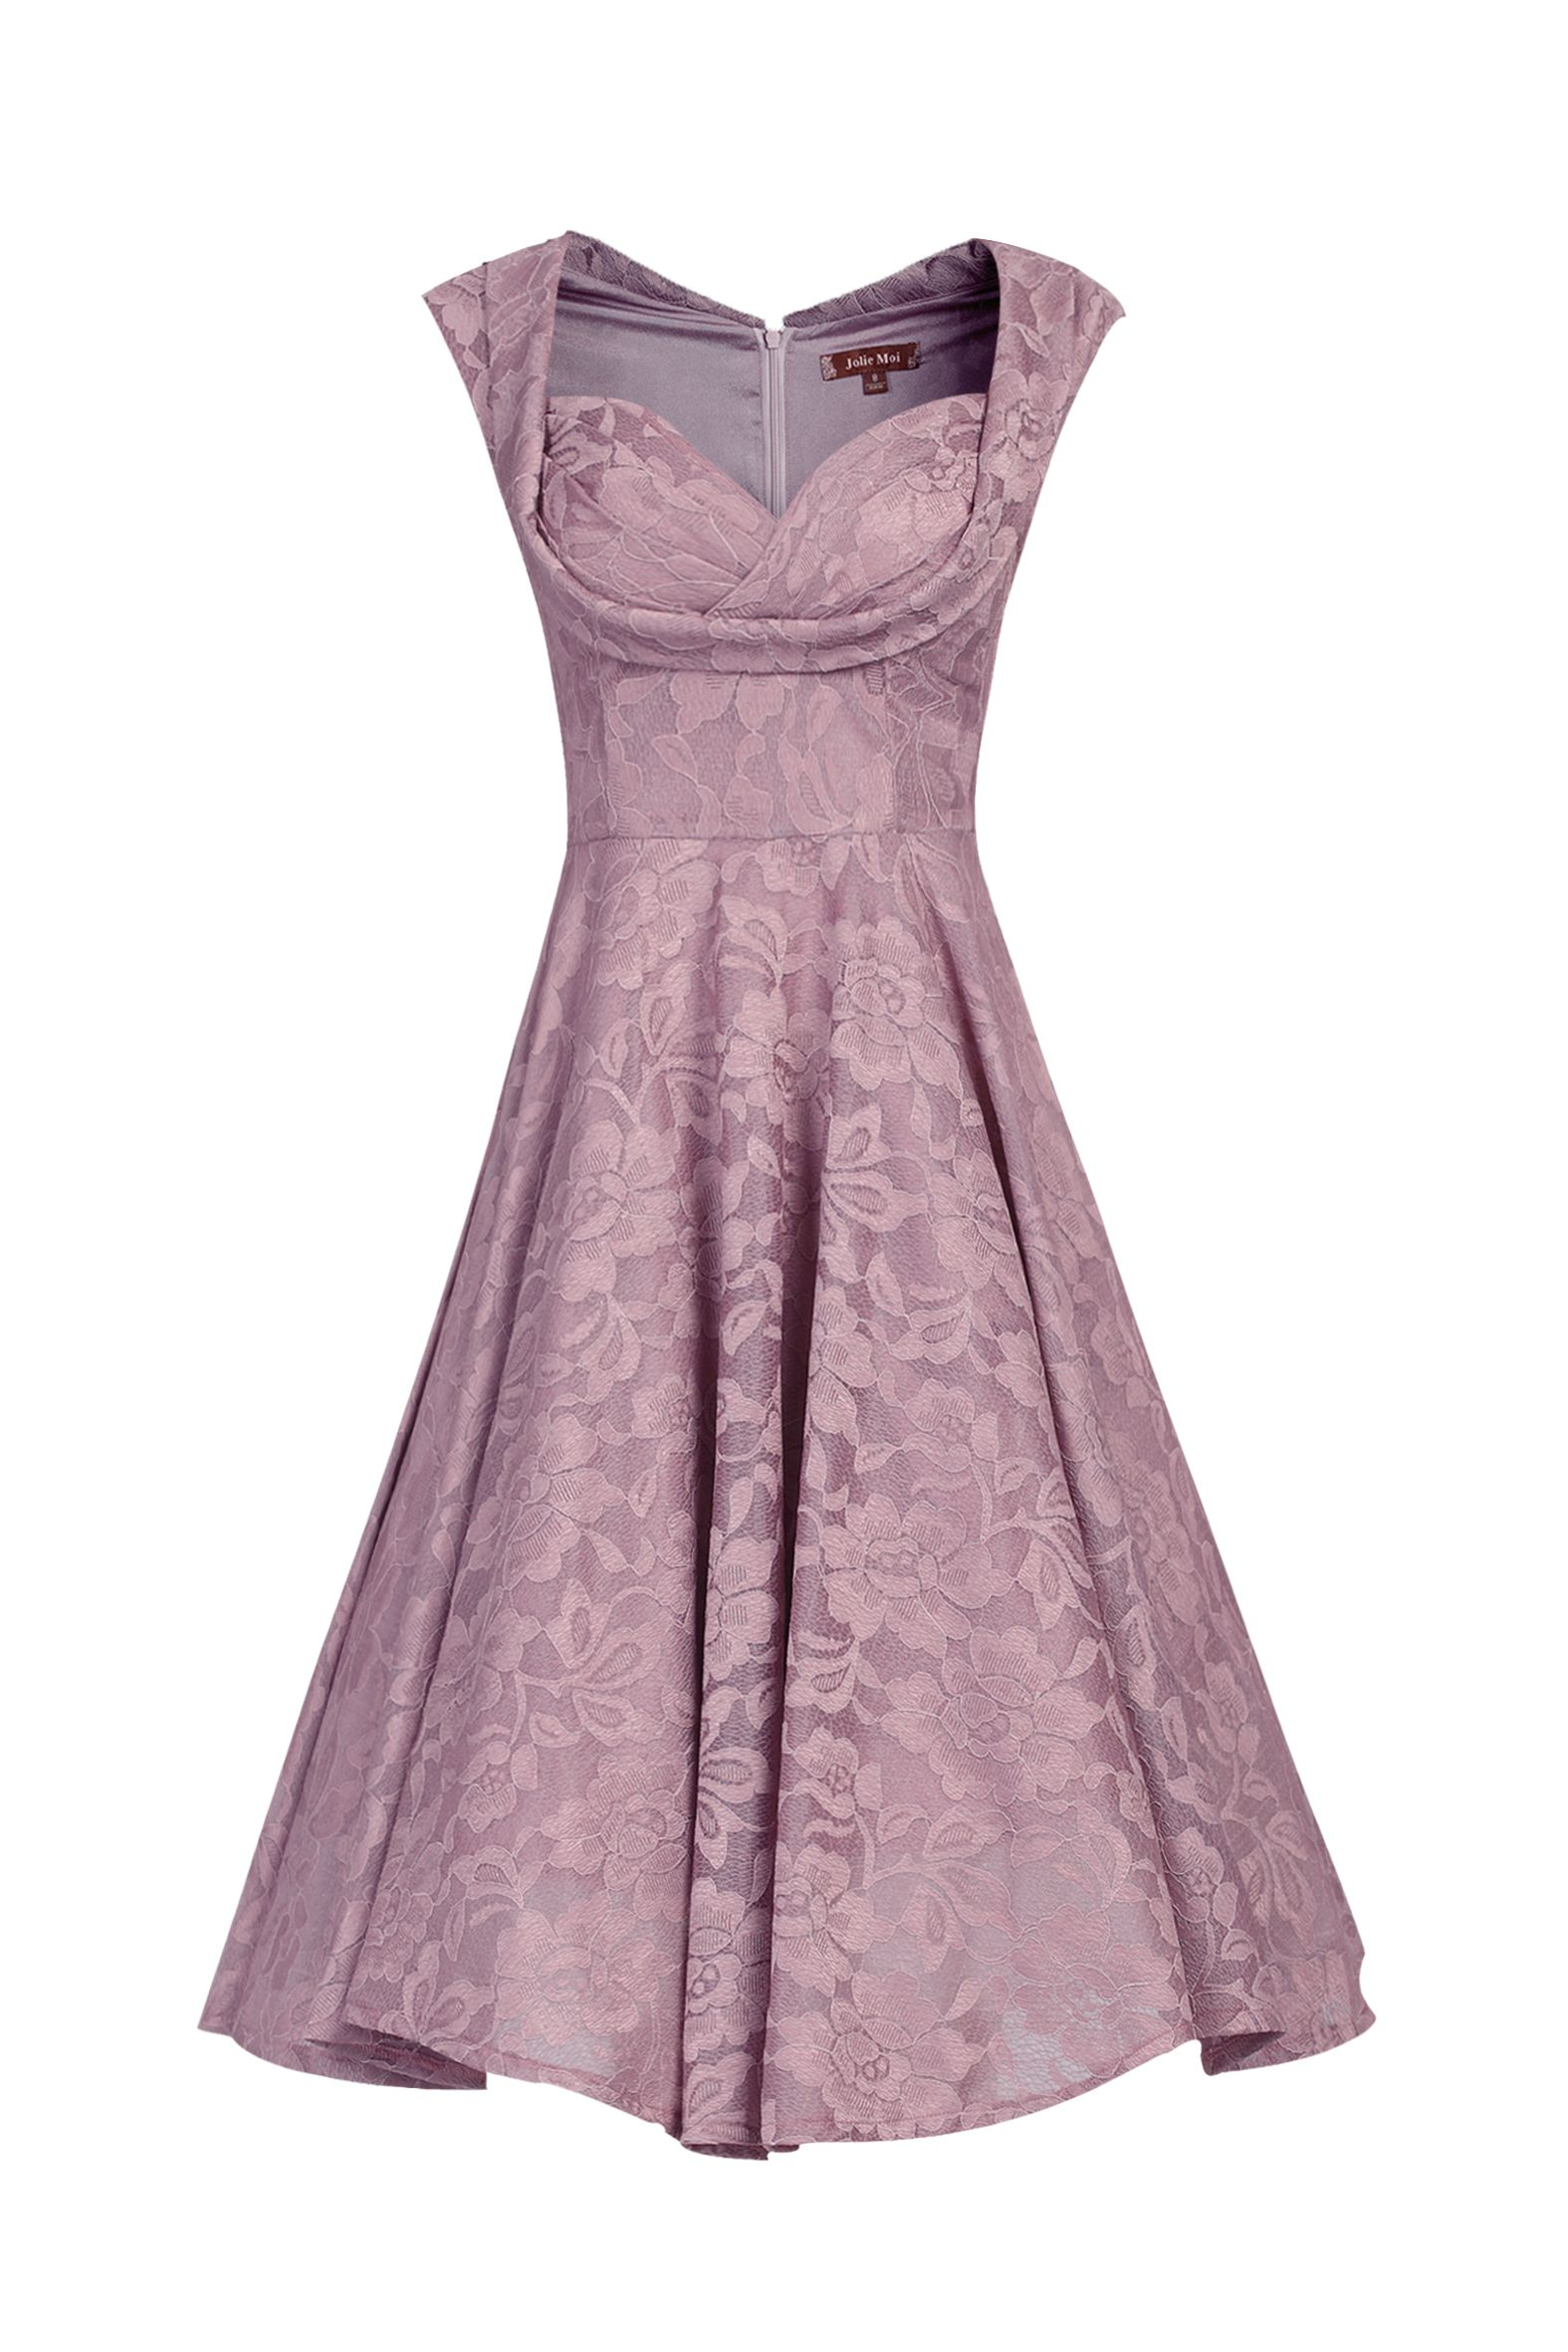 Jolie Moi Ruched Crossover Bust Prom Dress, Lilac